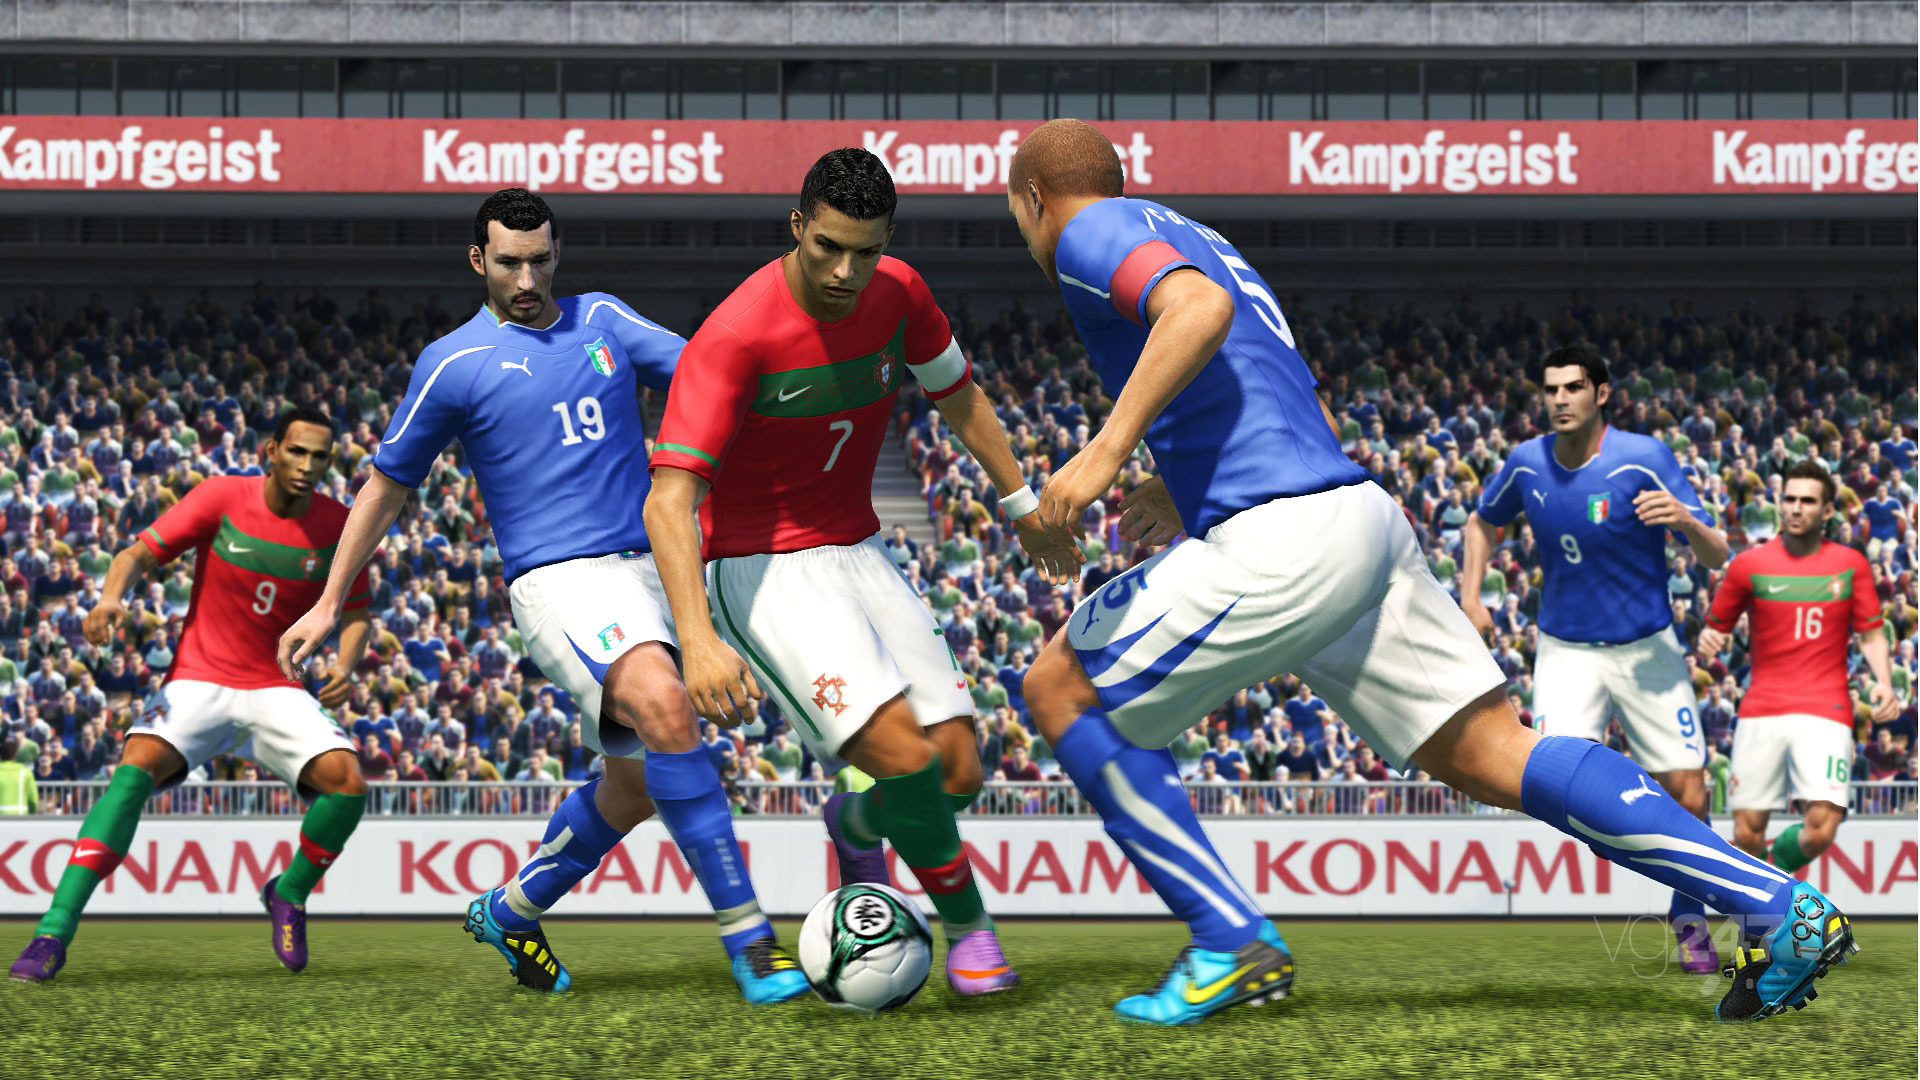 Pes 2011 pc game crack free download litetex.